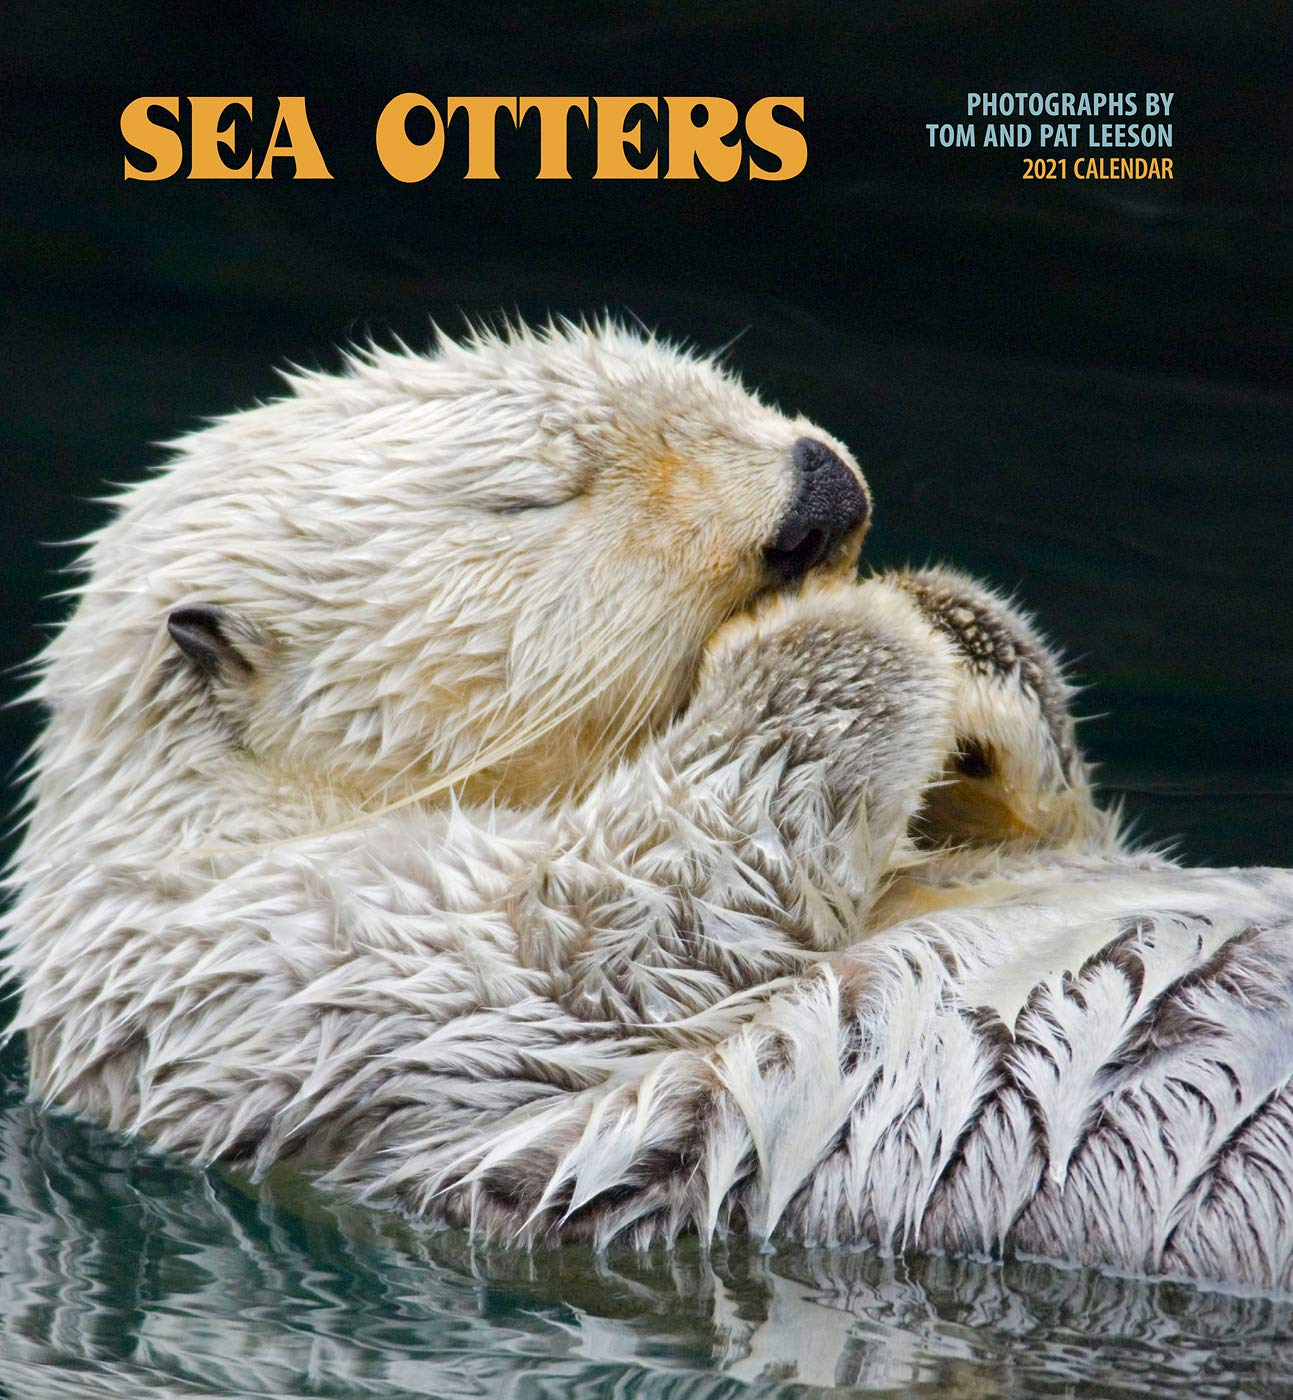 Otter Calendar 2021 Sea Otters 2021 Wall Calendar: Tom and Pat Leeson, Pomegranate